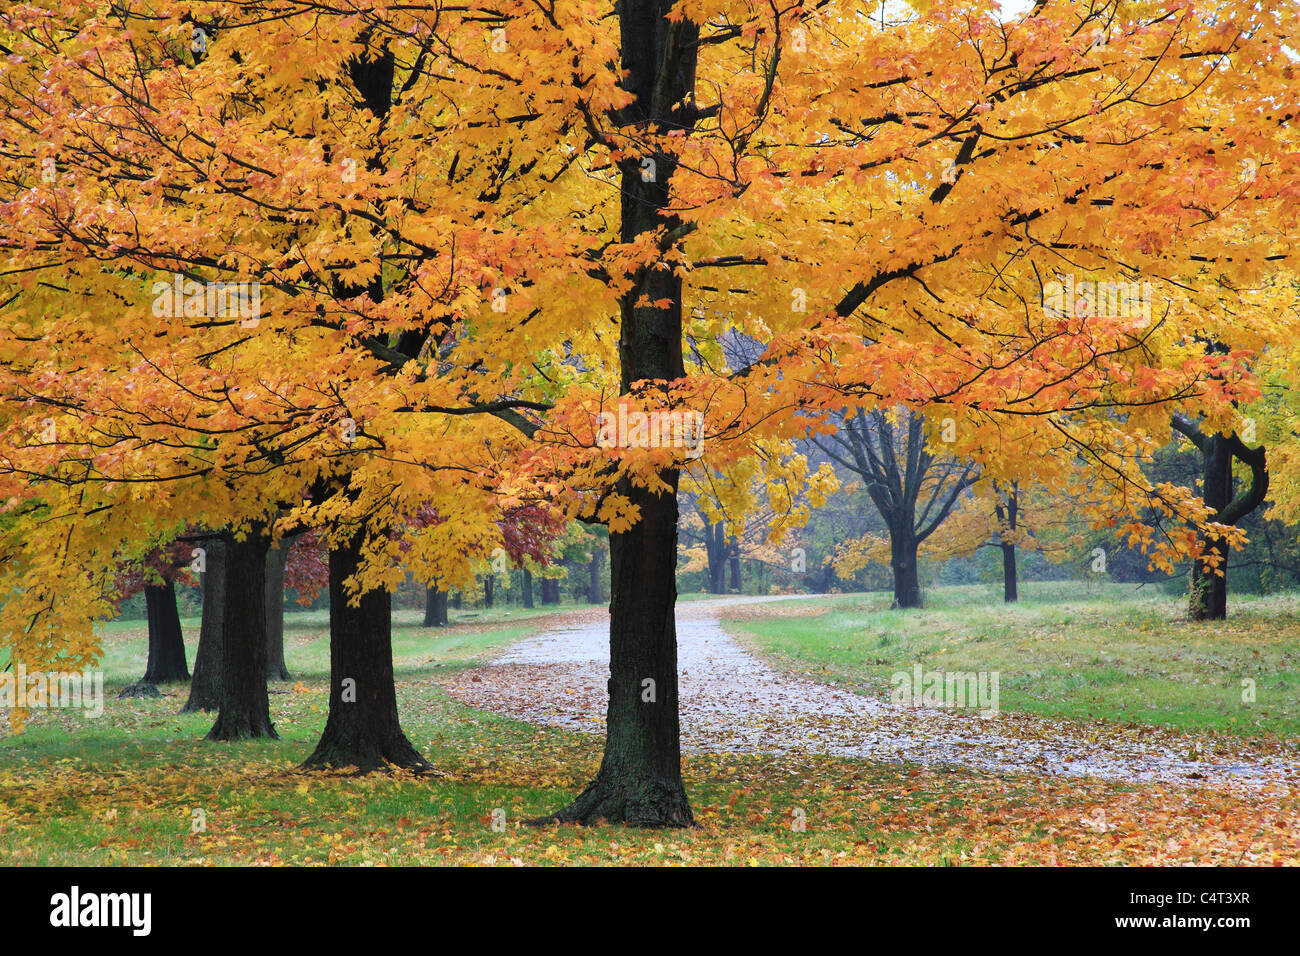 A Quiet Walking Path Through The Park On A Rainy Day In Autumn, Sharon Woods, Southwestern Ohio, USA - Stock Image